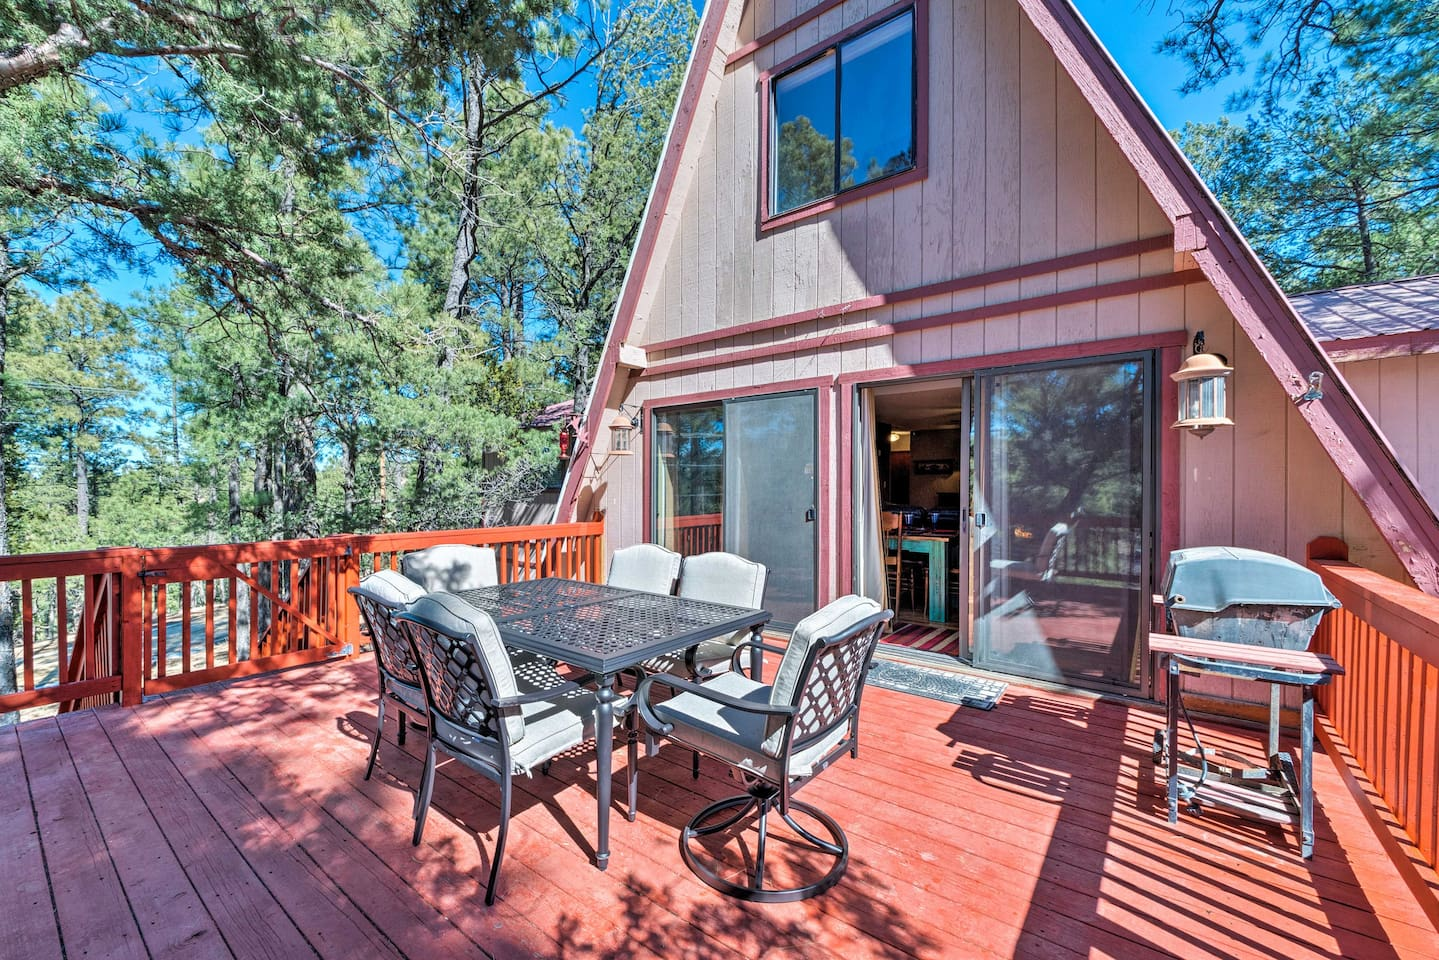 Experience the beauty of Ruidoso from this rustic vacation rental cabin!